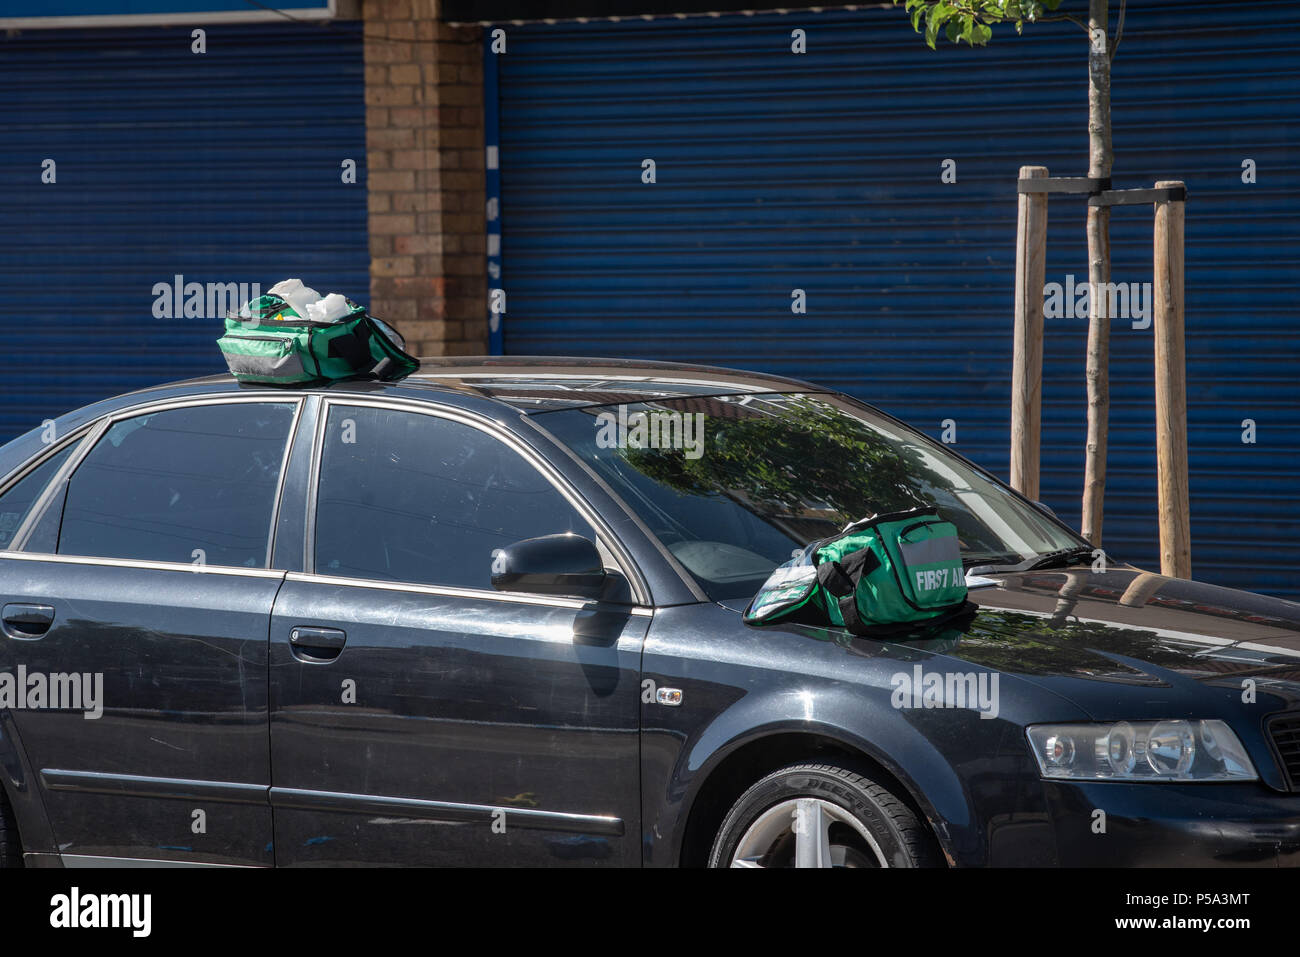 London, United Kingdom. 26 June 2018. A stabbing has occurred in Bounces Road, Edmonton. Credit: Peter Manning/Alamy Live News Stock Photo